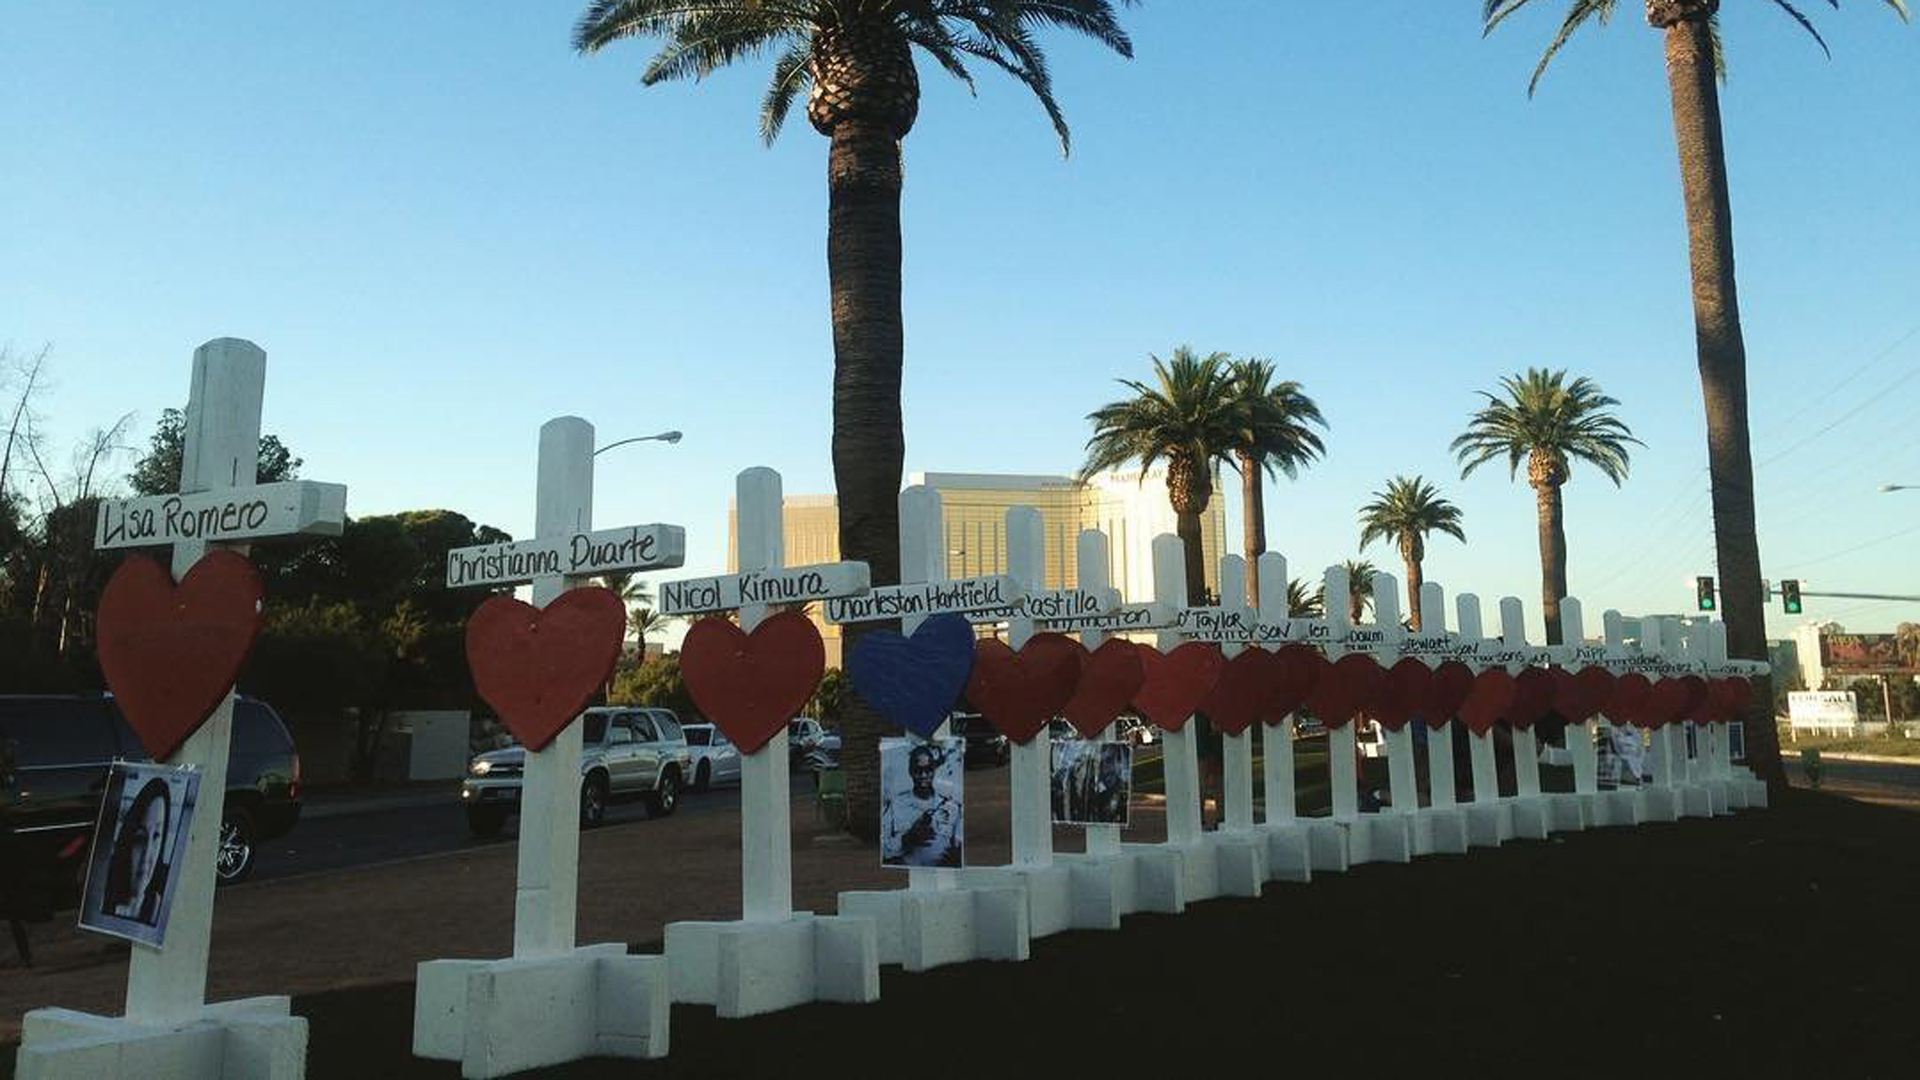 Fifty-eight crosses, one for each victim killed in the mass shooting, line the Las Vegas Strip on Oct. 1, 2019. (Tami Harper Winn)